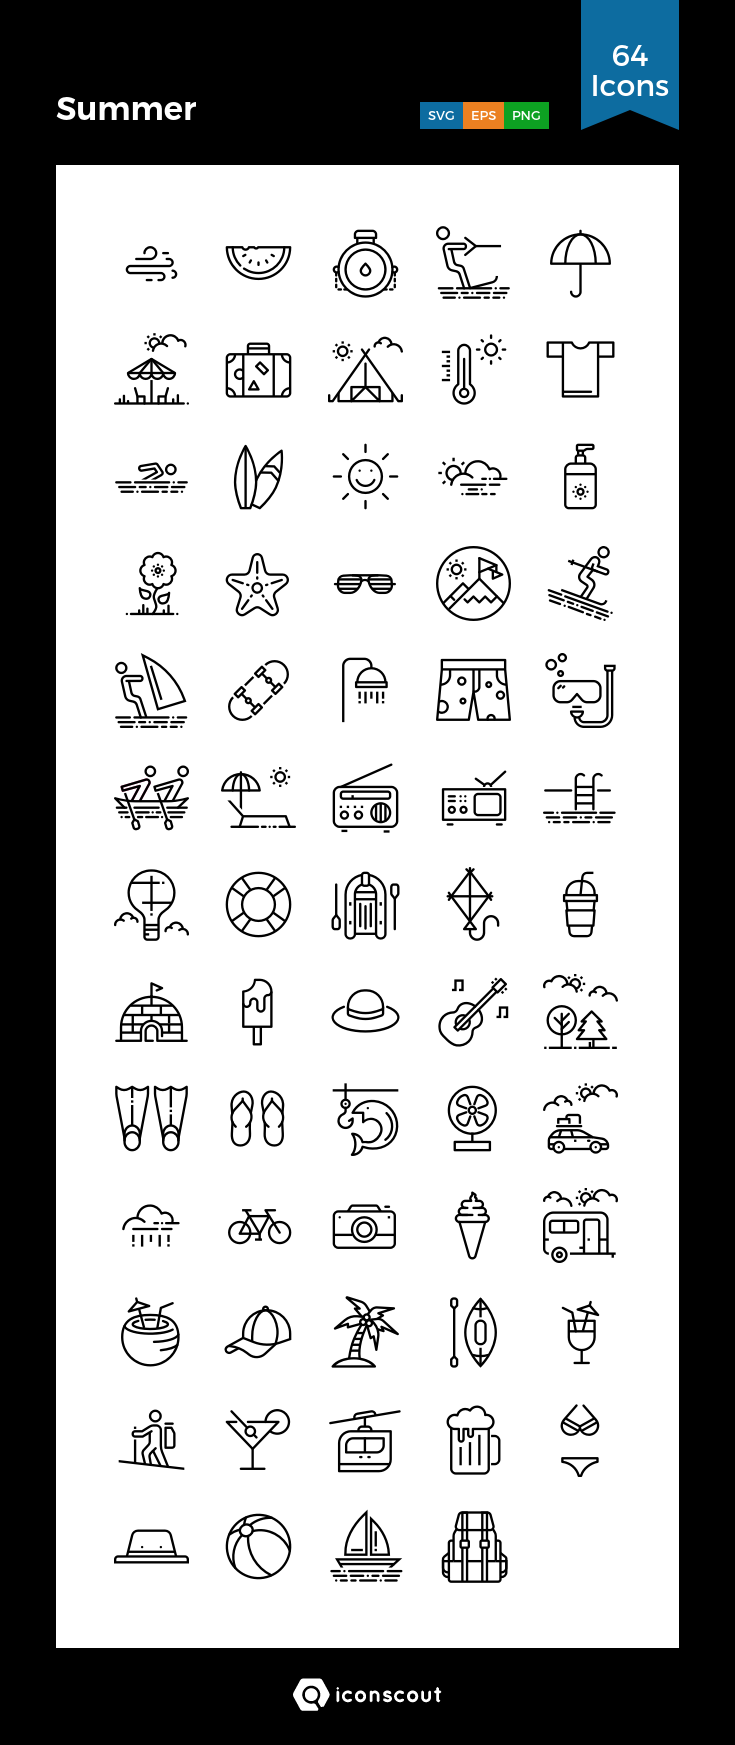 9a8620885 Summer Icon Pack - 64 Line Icons | Seasons | Doodle icon, How to ...